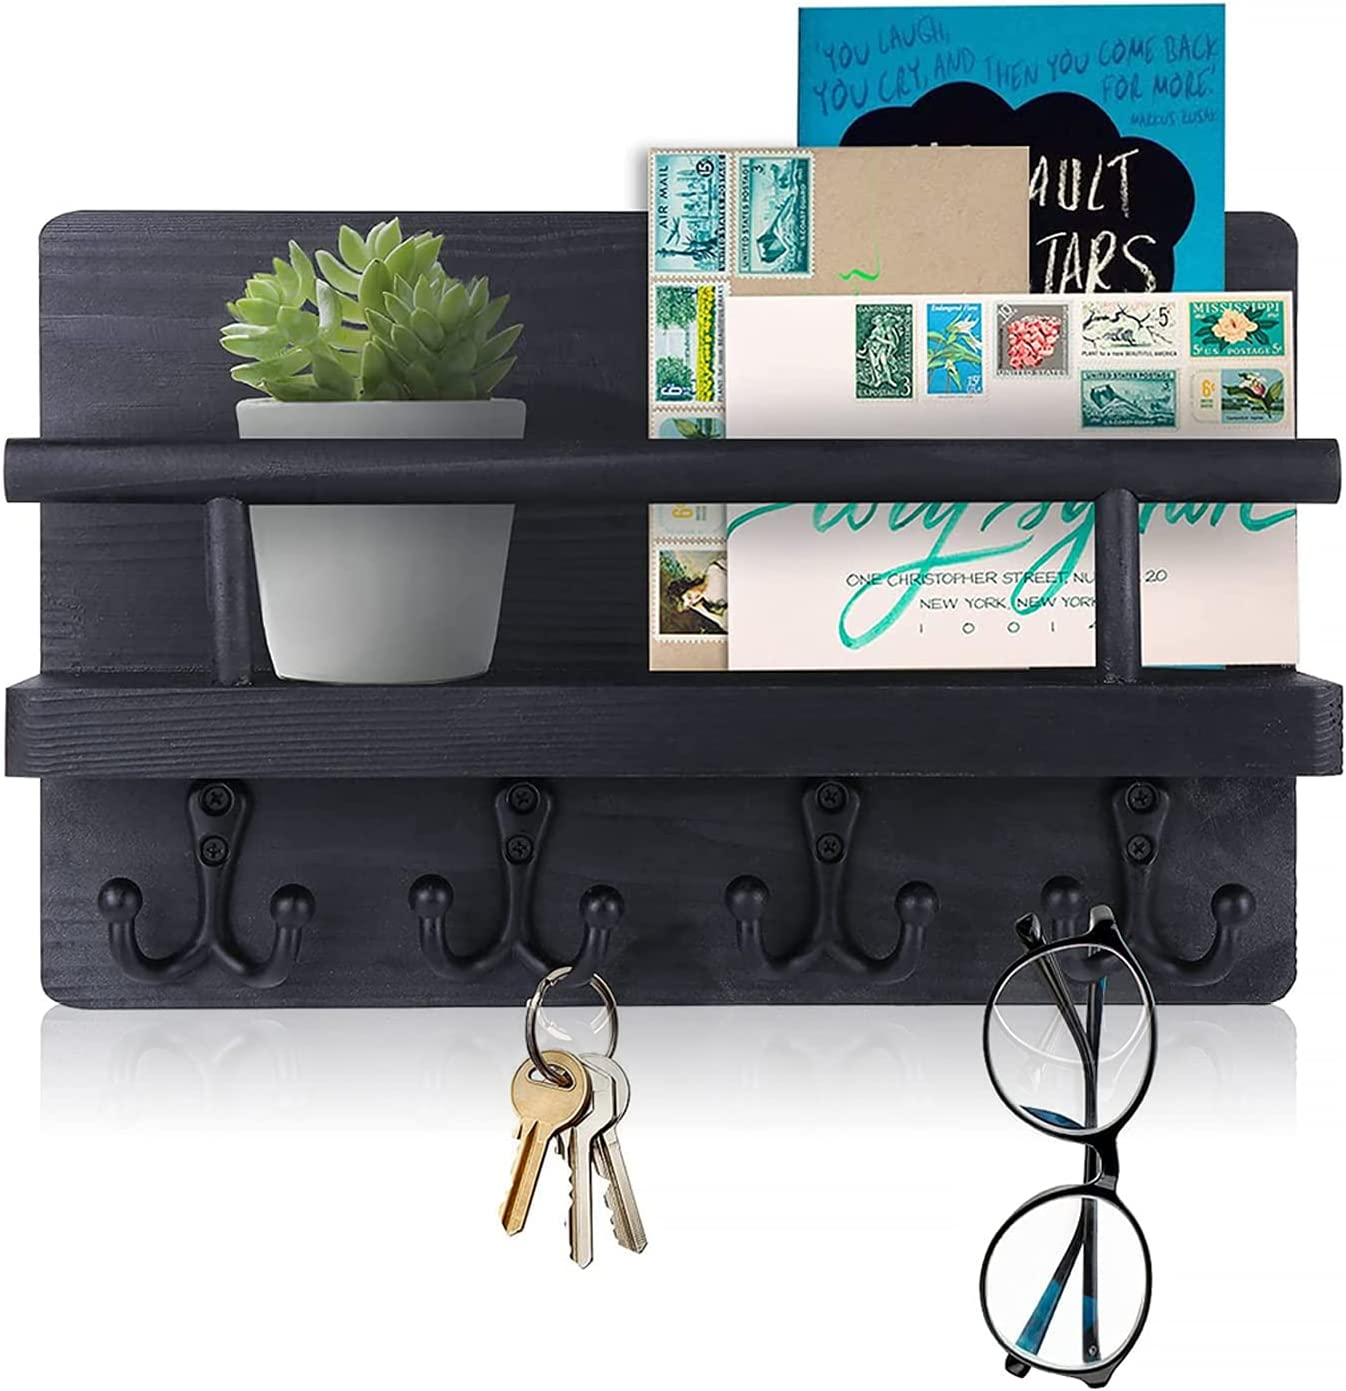 BIGLUFU Key Holder for Wall Key Hooks Rustic,Mail Shelf Organizer Wall Mount,Decorative Wooden Rack with 4 Double Thick Hooks Home Decor for Entryway,Storage, Living Room,Kitchen (Black)